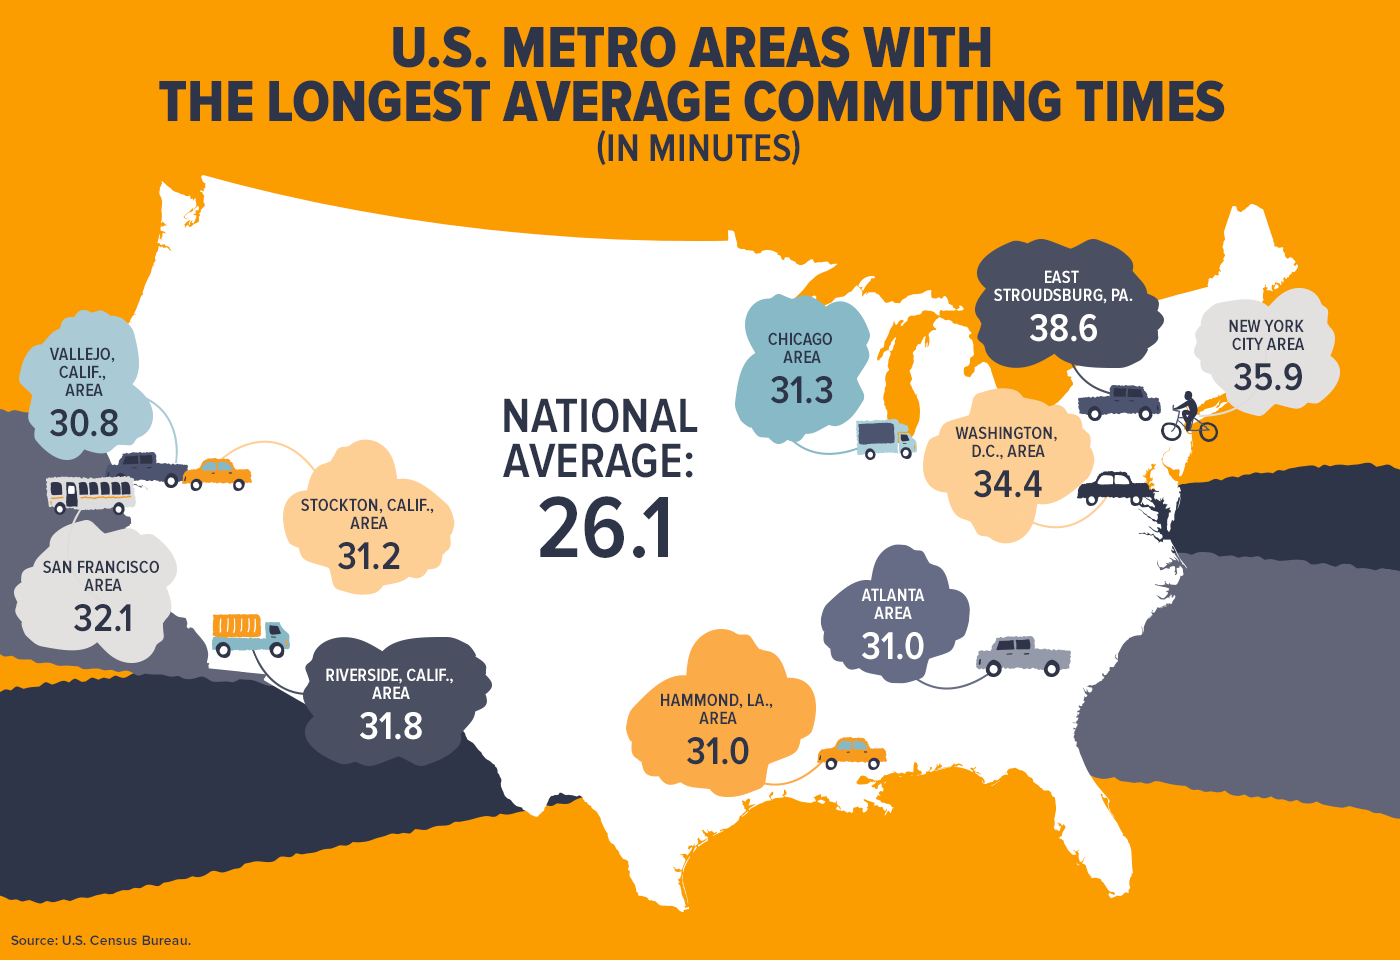 U.S. Metro Areas with the Longest Average Commuting Times (in Minutes)